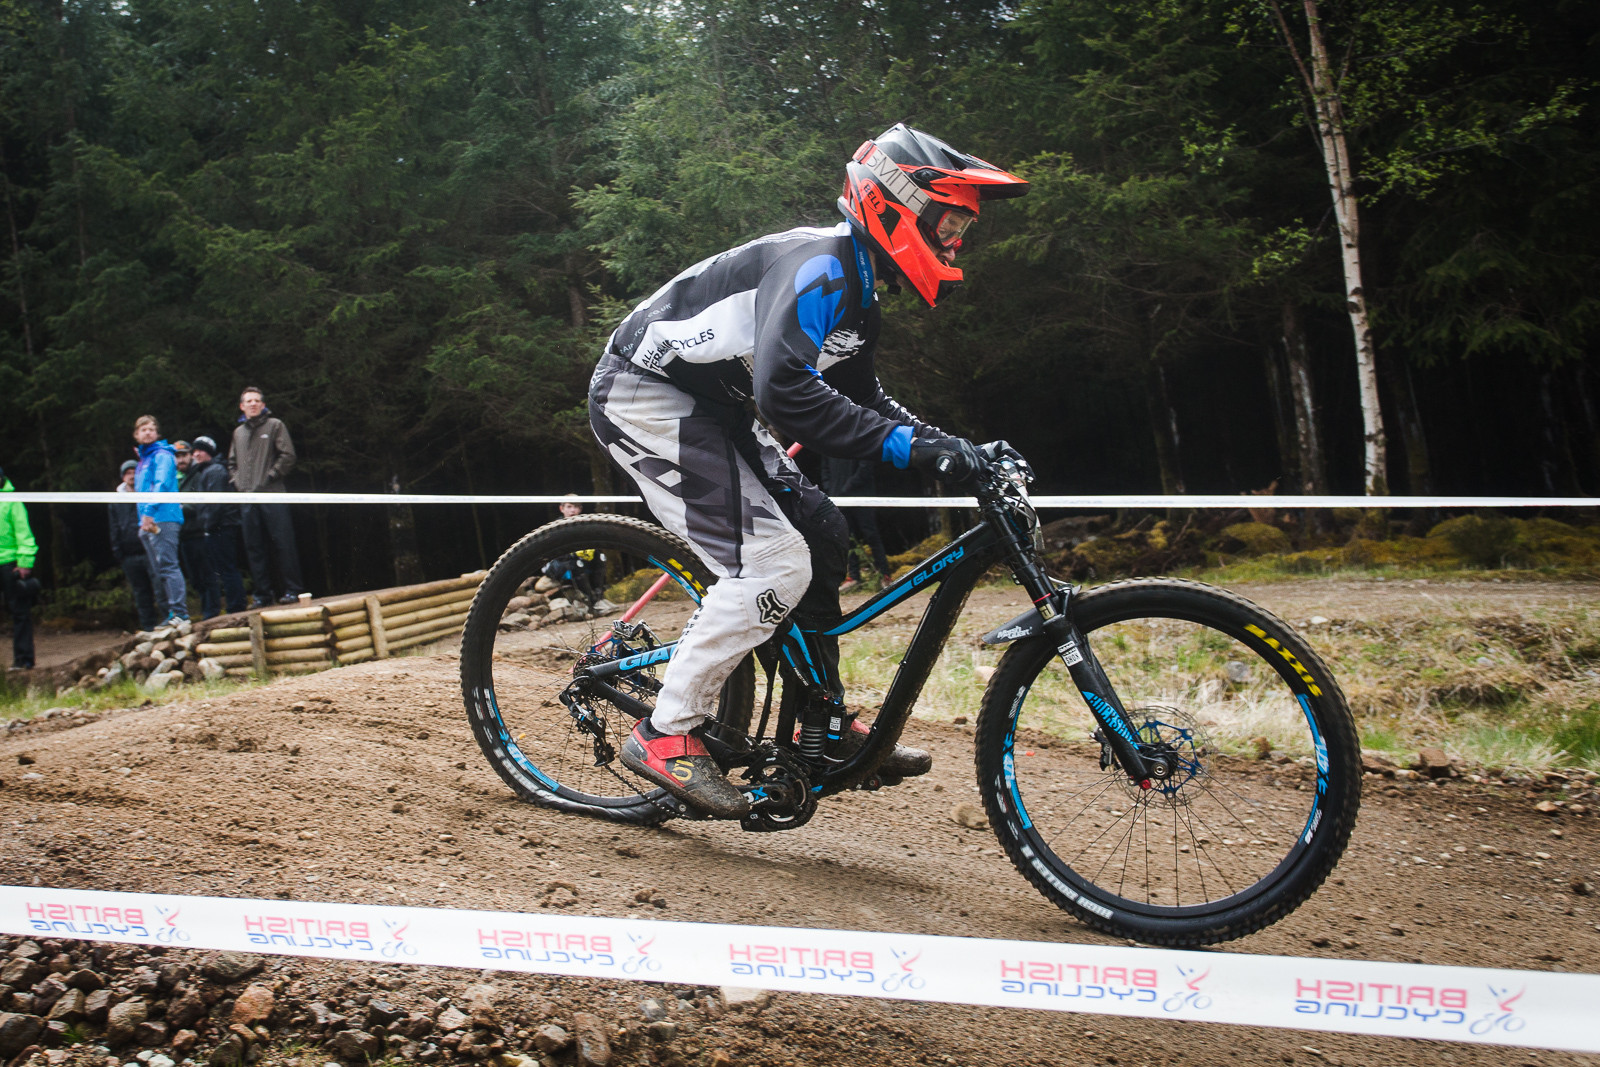 G-Out Fort William - Giant Glory Advanced - G-Out Project - Fort William BDS 2015 - Mountain Biking Pictures - Vital MTB